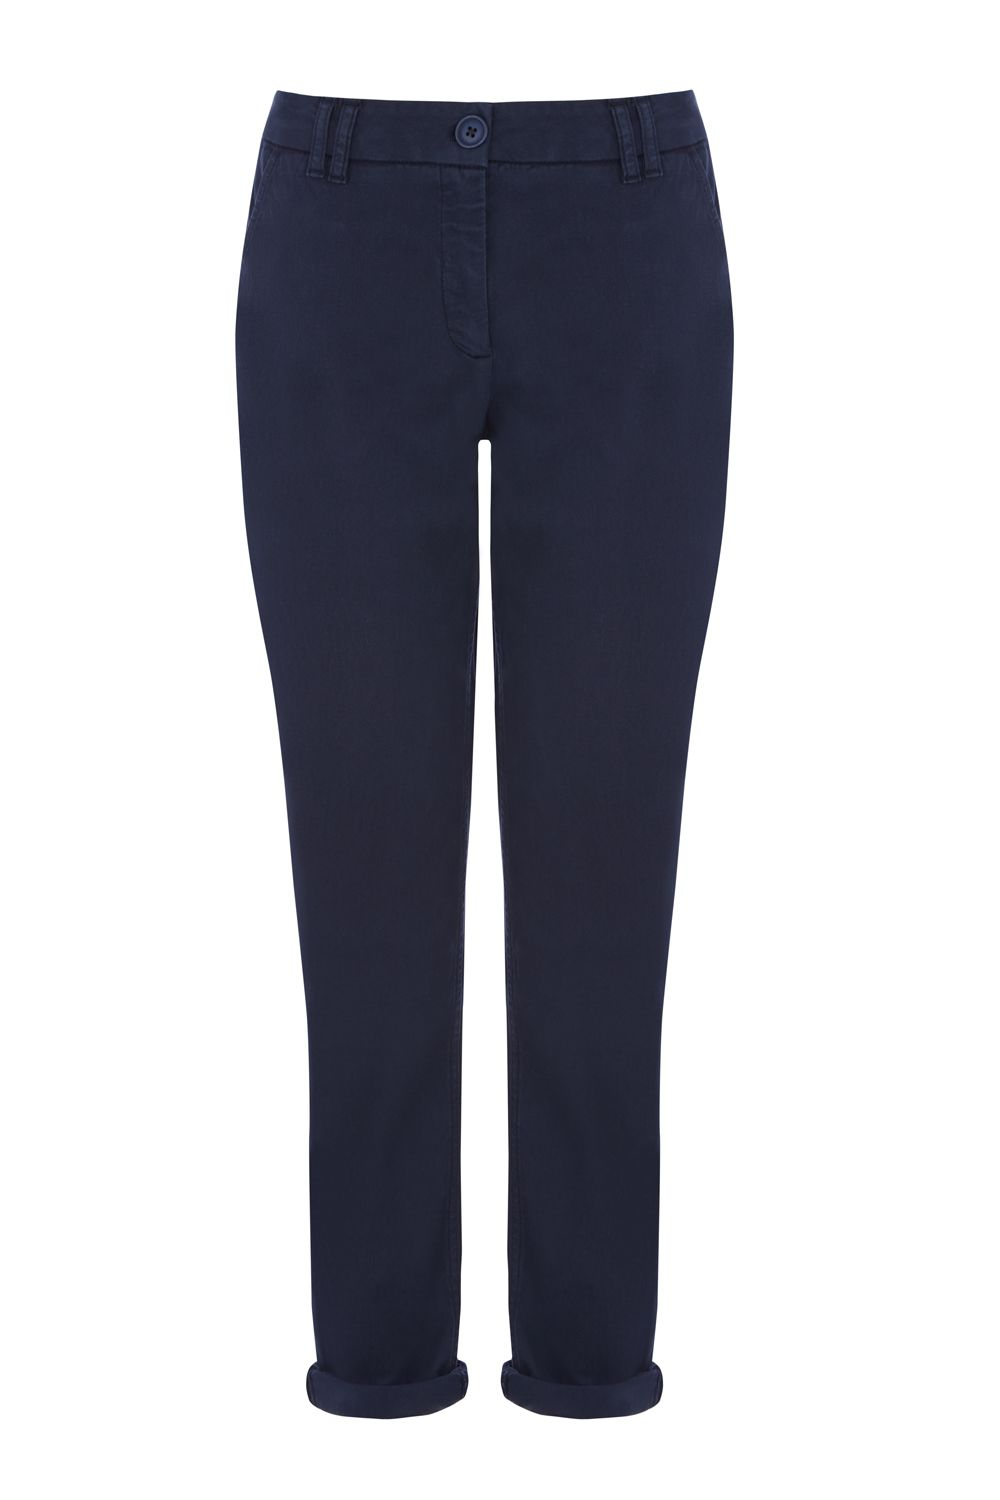 Oasis CASUAL CHINO, Blue